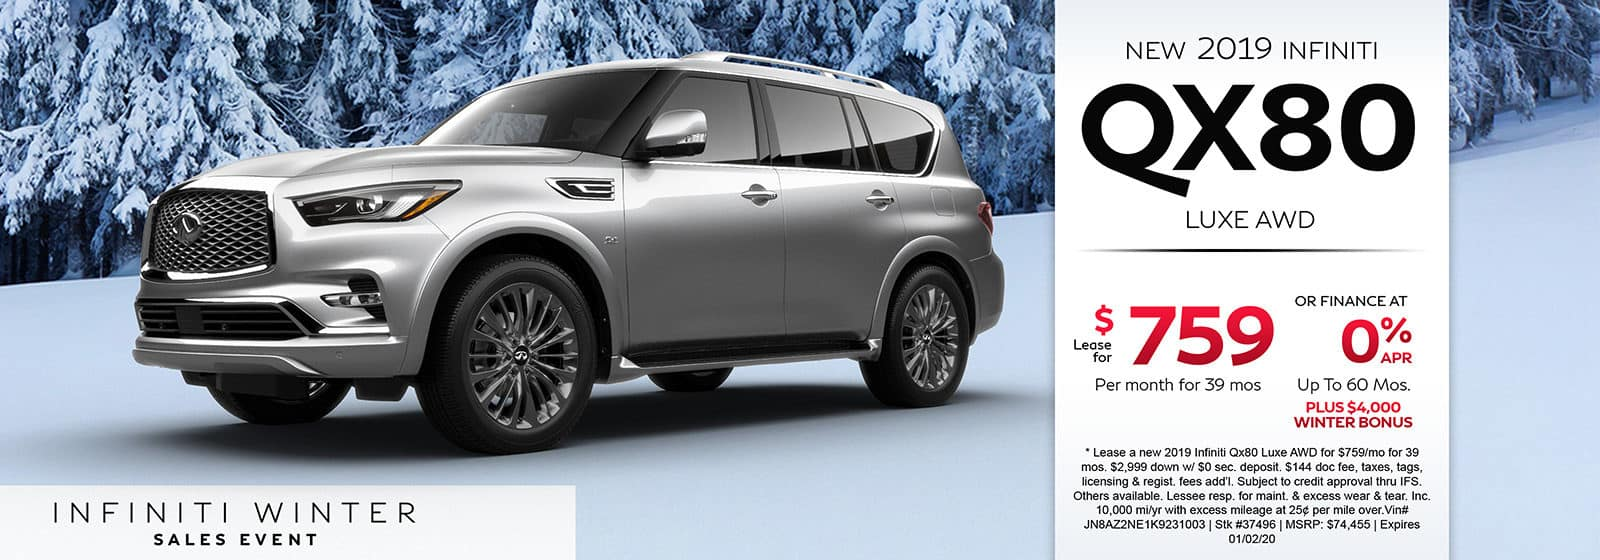 Lease a new 2019 INFINITI QX80 Luxe AWD for $759 a month for 39 months. Or get special 0% APR financing for up to 60 months